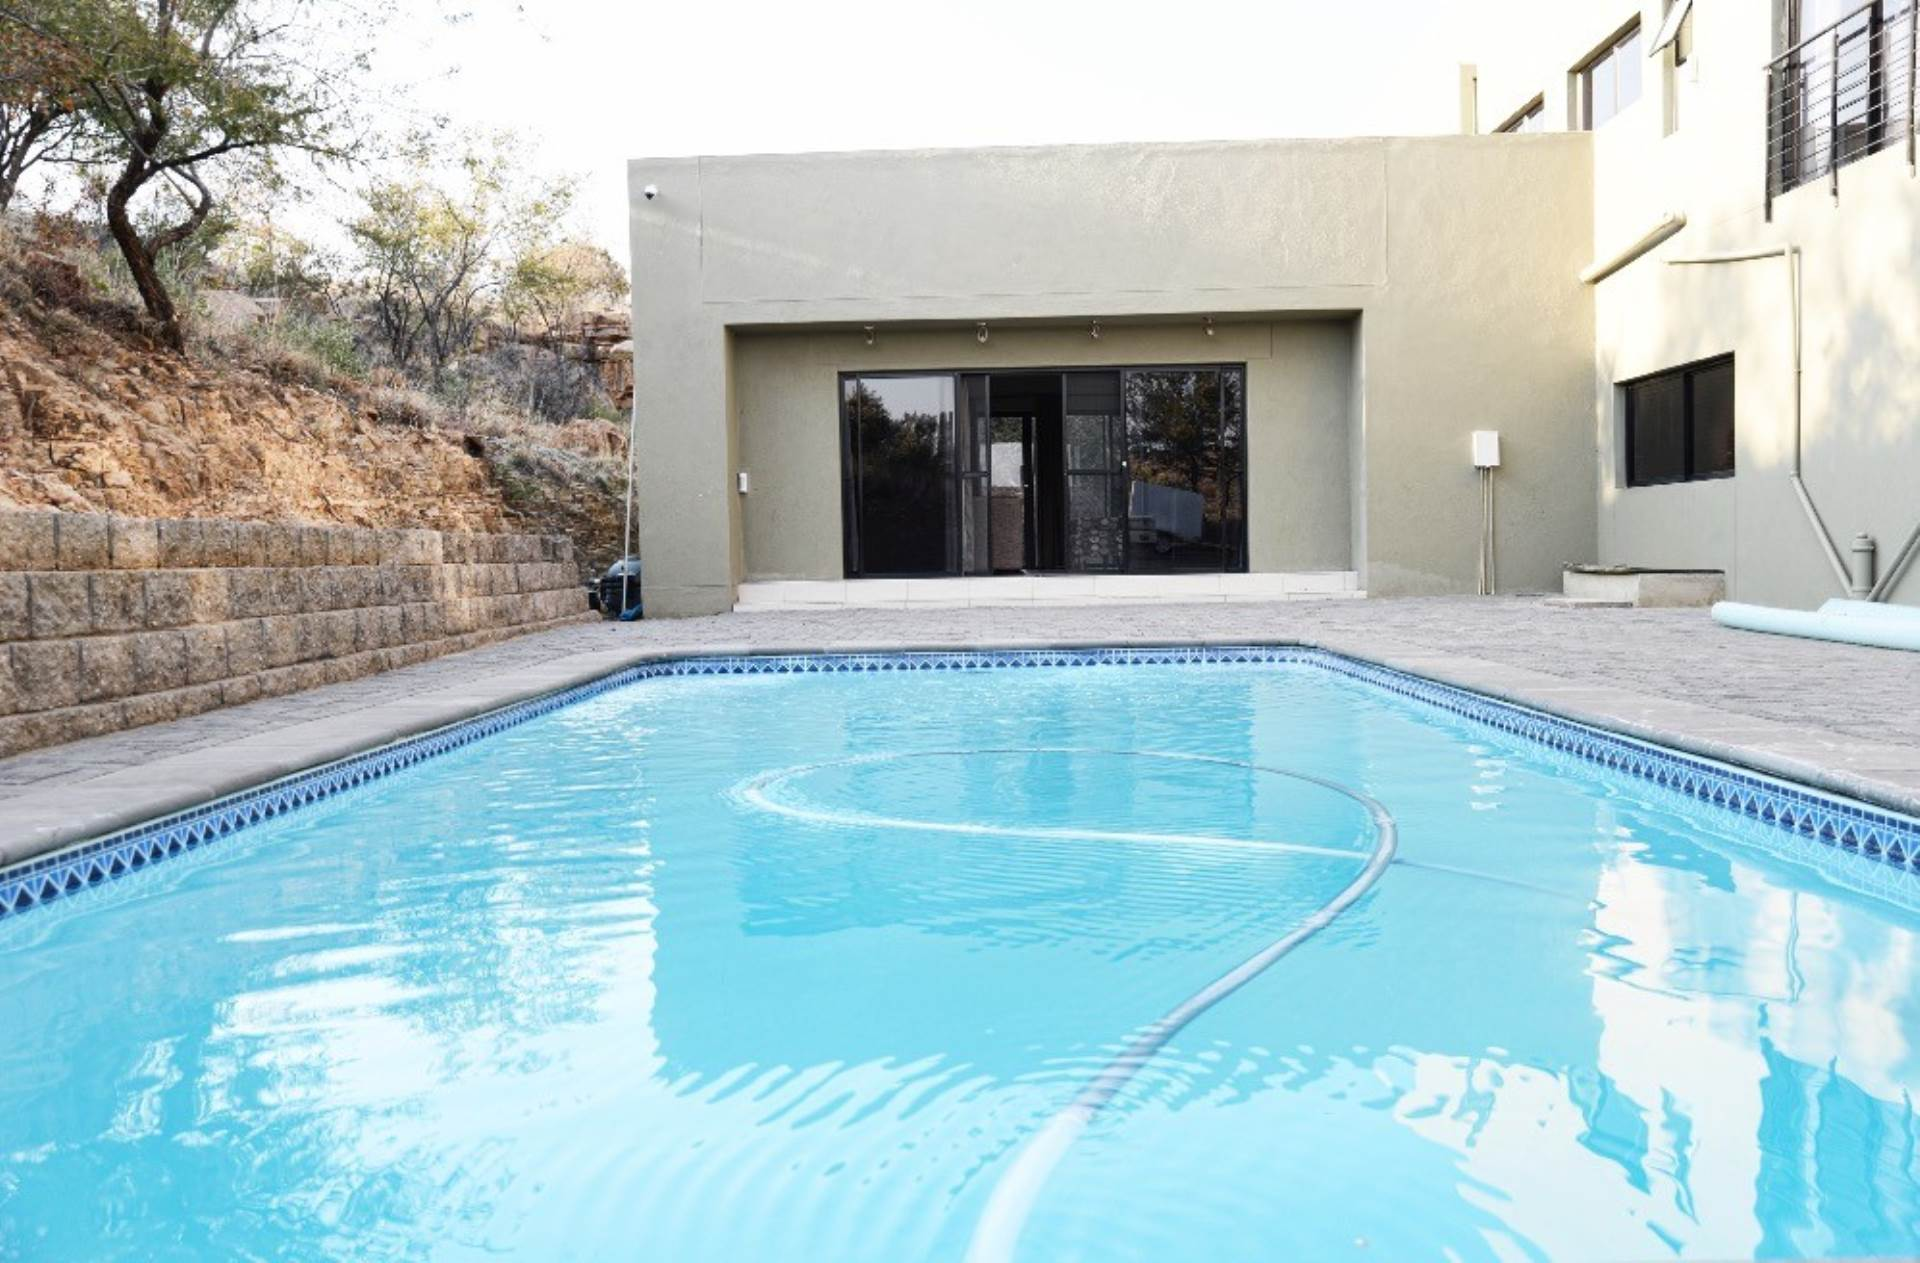 House for sale in windhoek windhoek namibia for nam